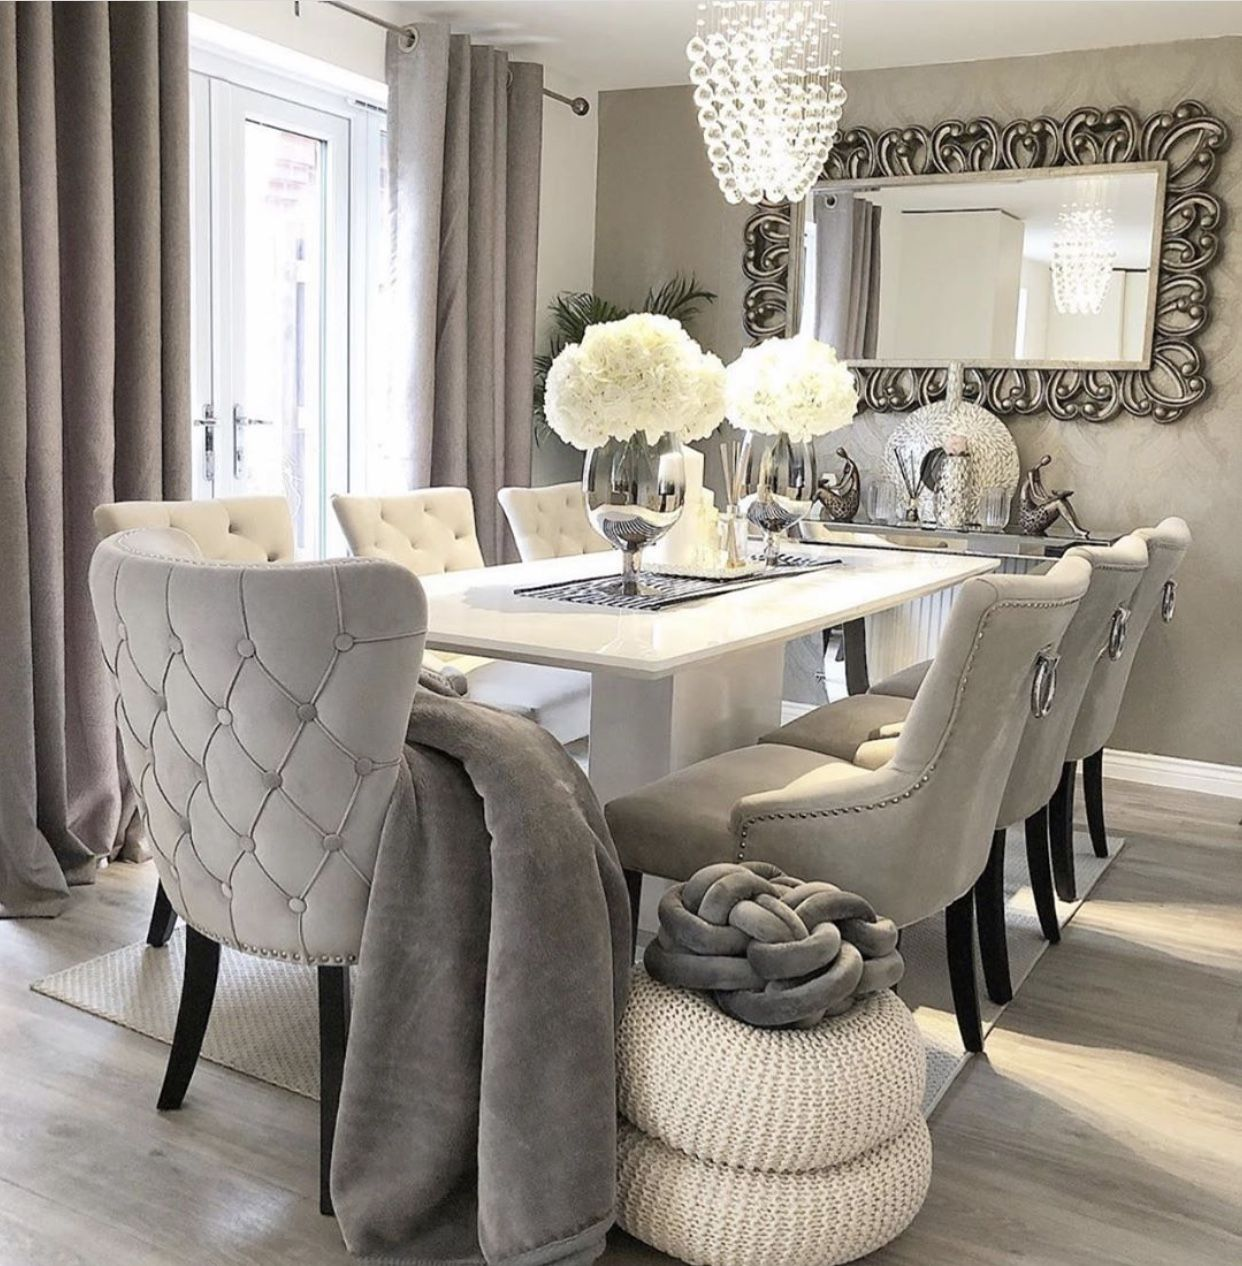 20 Gorgeous Farmhouse Dining Room Inspirations - Chaylor & Mads